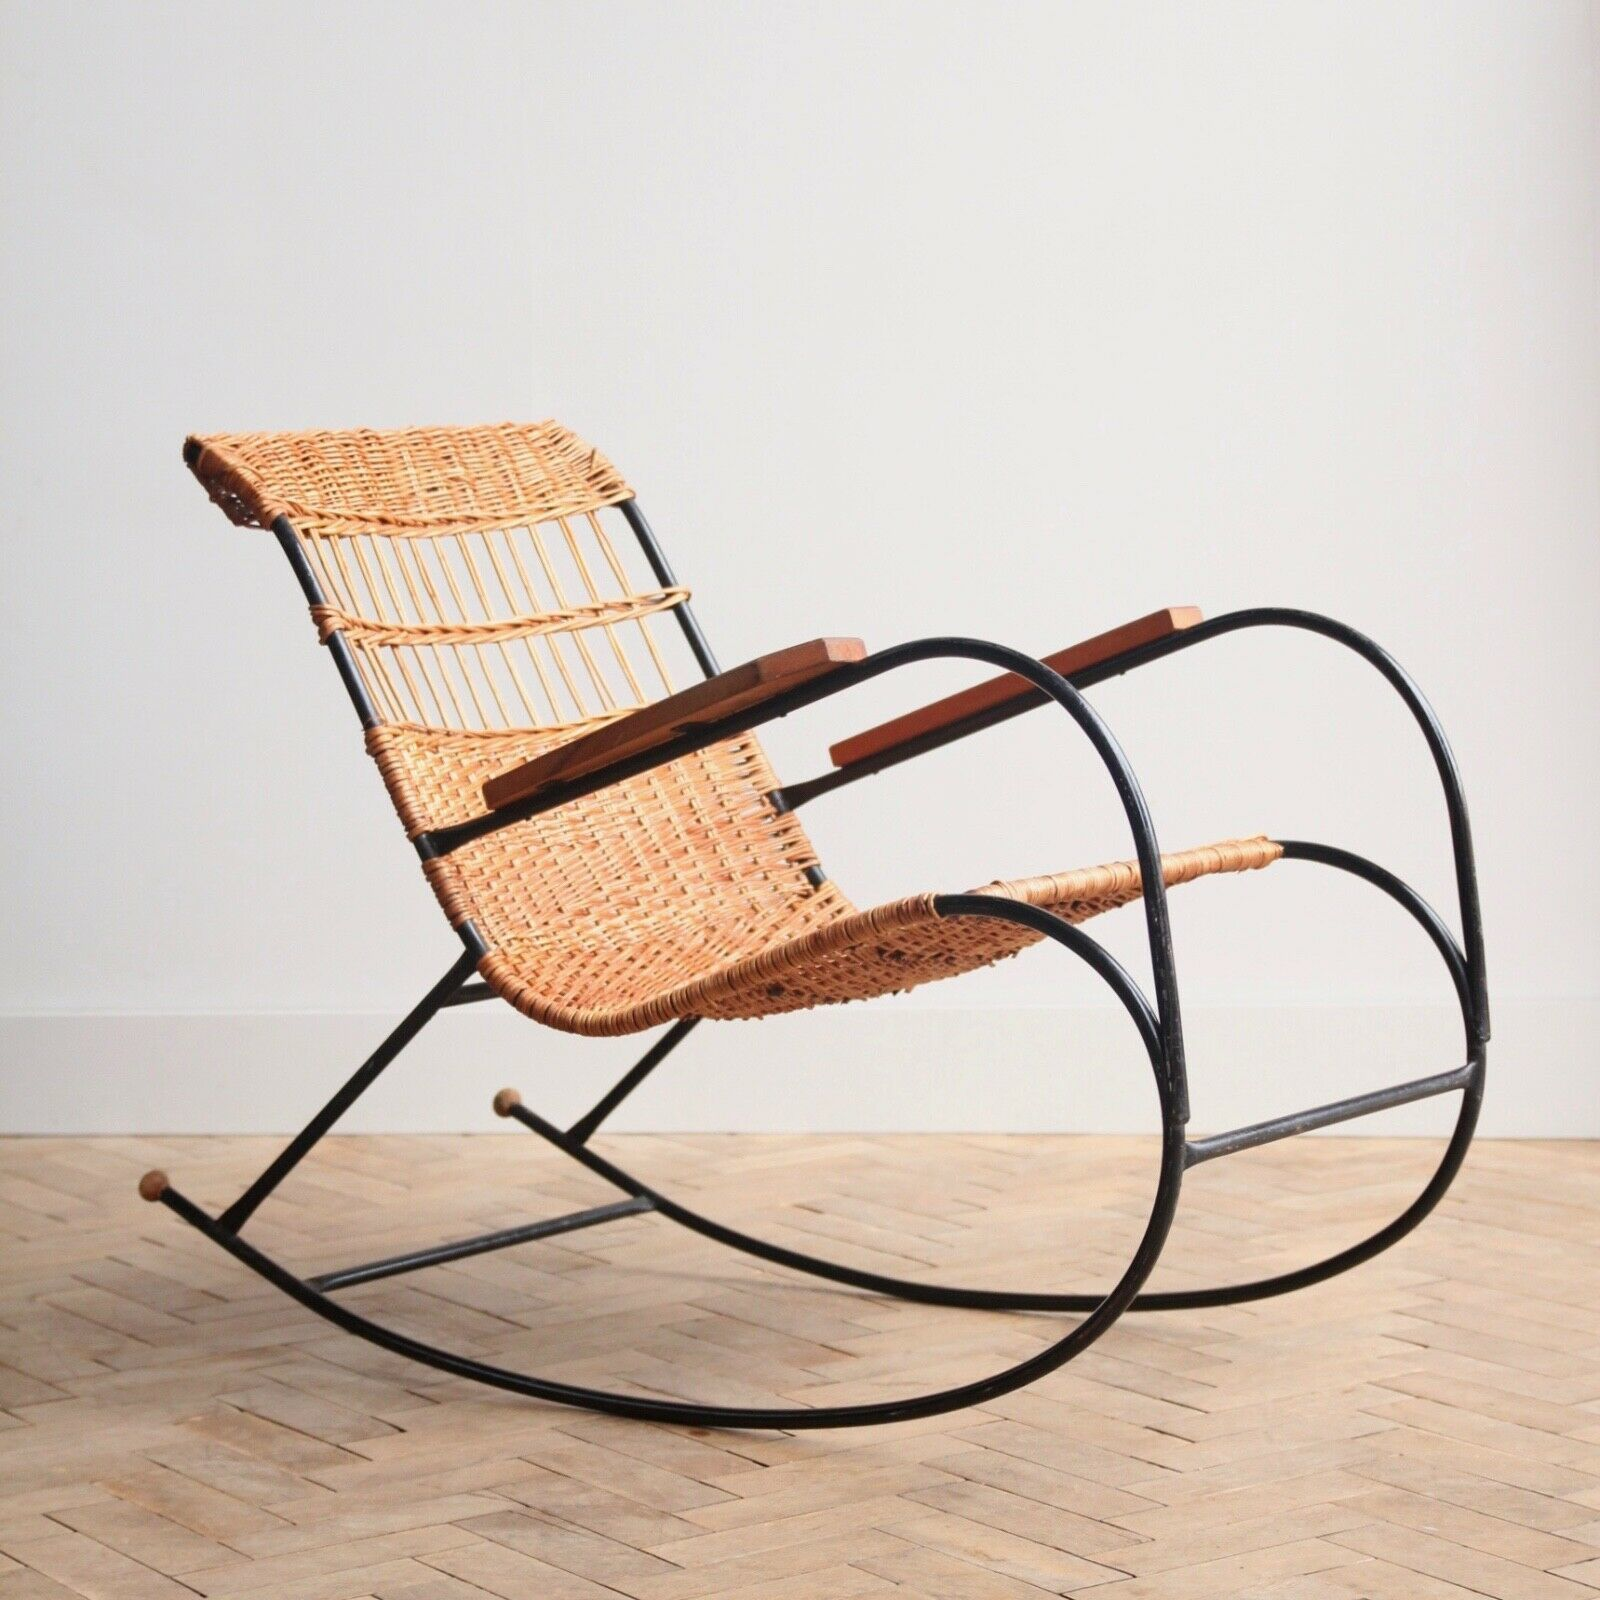 Wicker Rocking Chair Vintage Retro Bent Steel Cane Wicker Rocking Lounge Arm Chair Mid Century